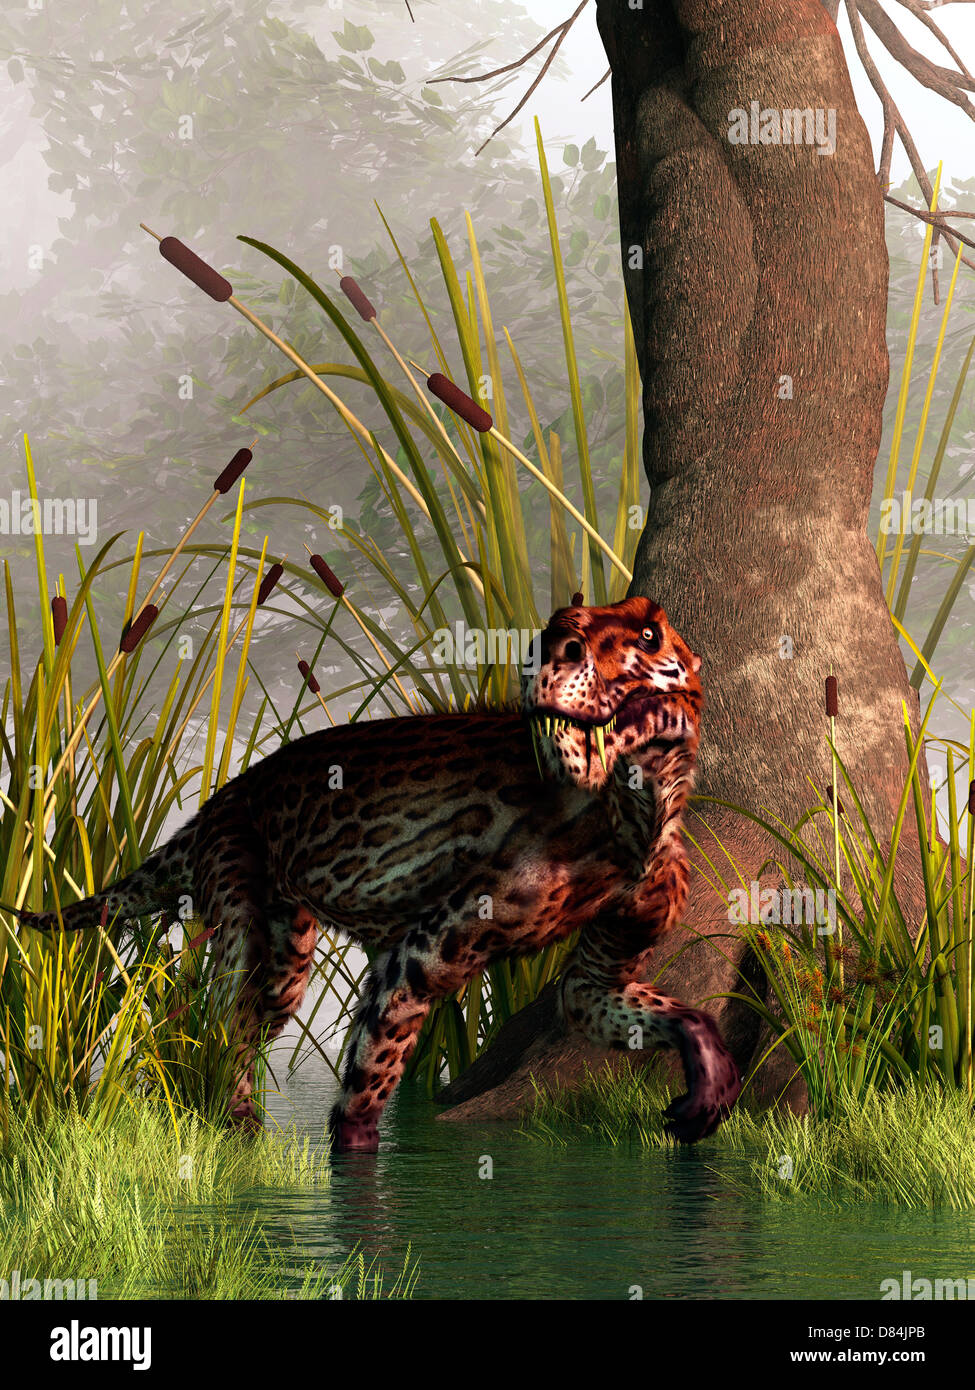 A Lycaenops stalking through a shallow prehistoric wetland. - Stock Image